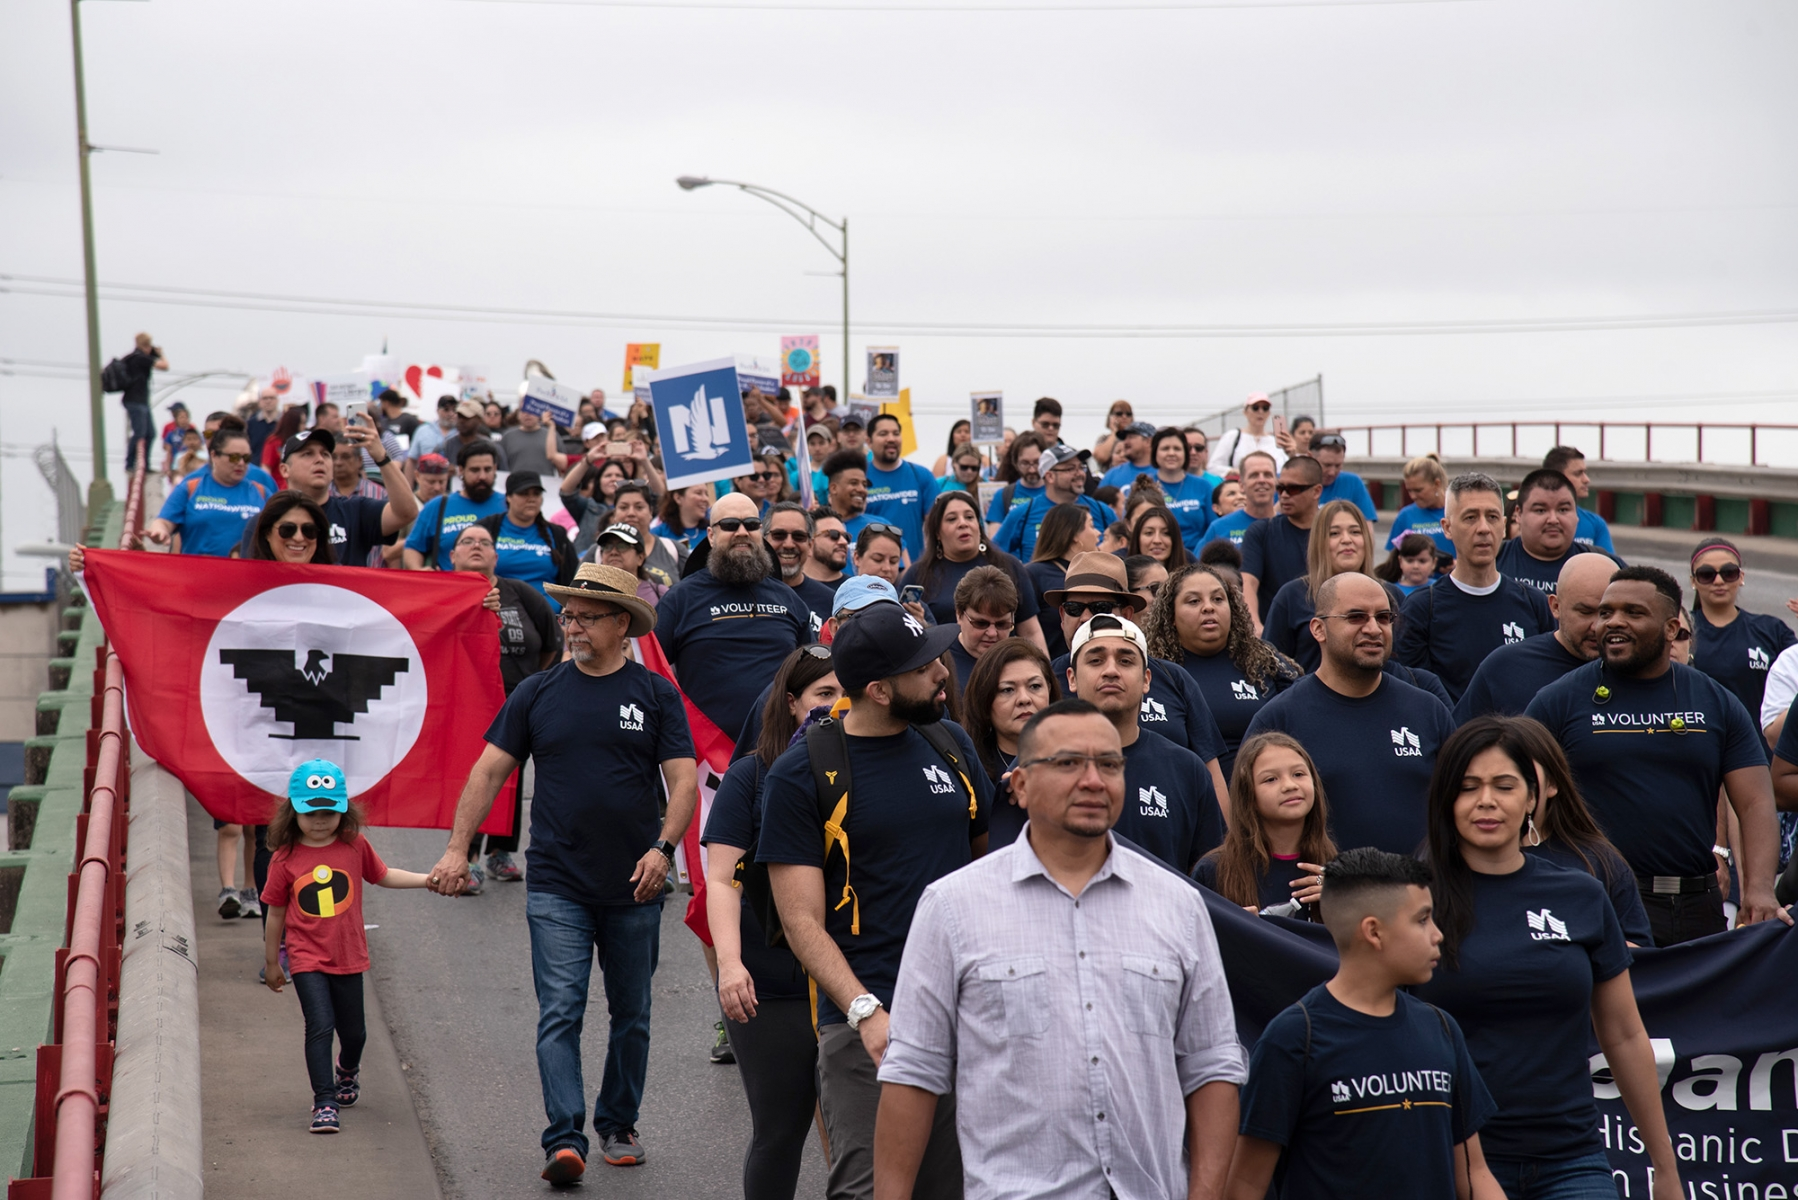 Participants walk down Guadalupe Street during San Antonio's 23rd annual César E. Chávez March for Justice on Saturday, March 30. Photo by V. Finster | Heron